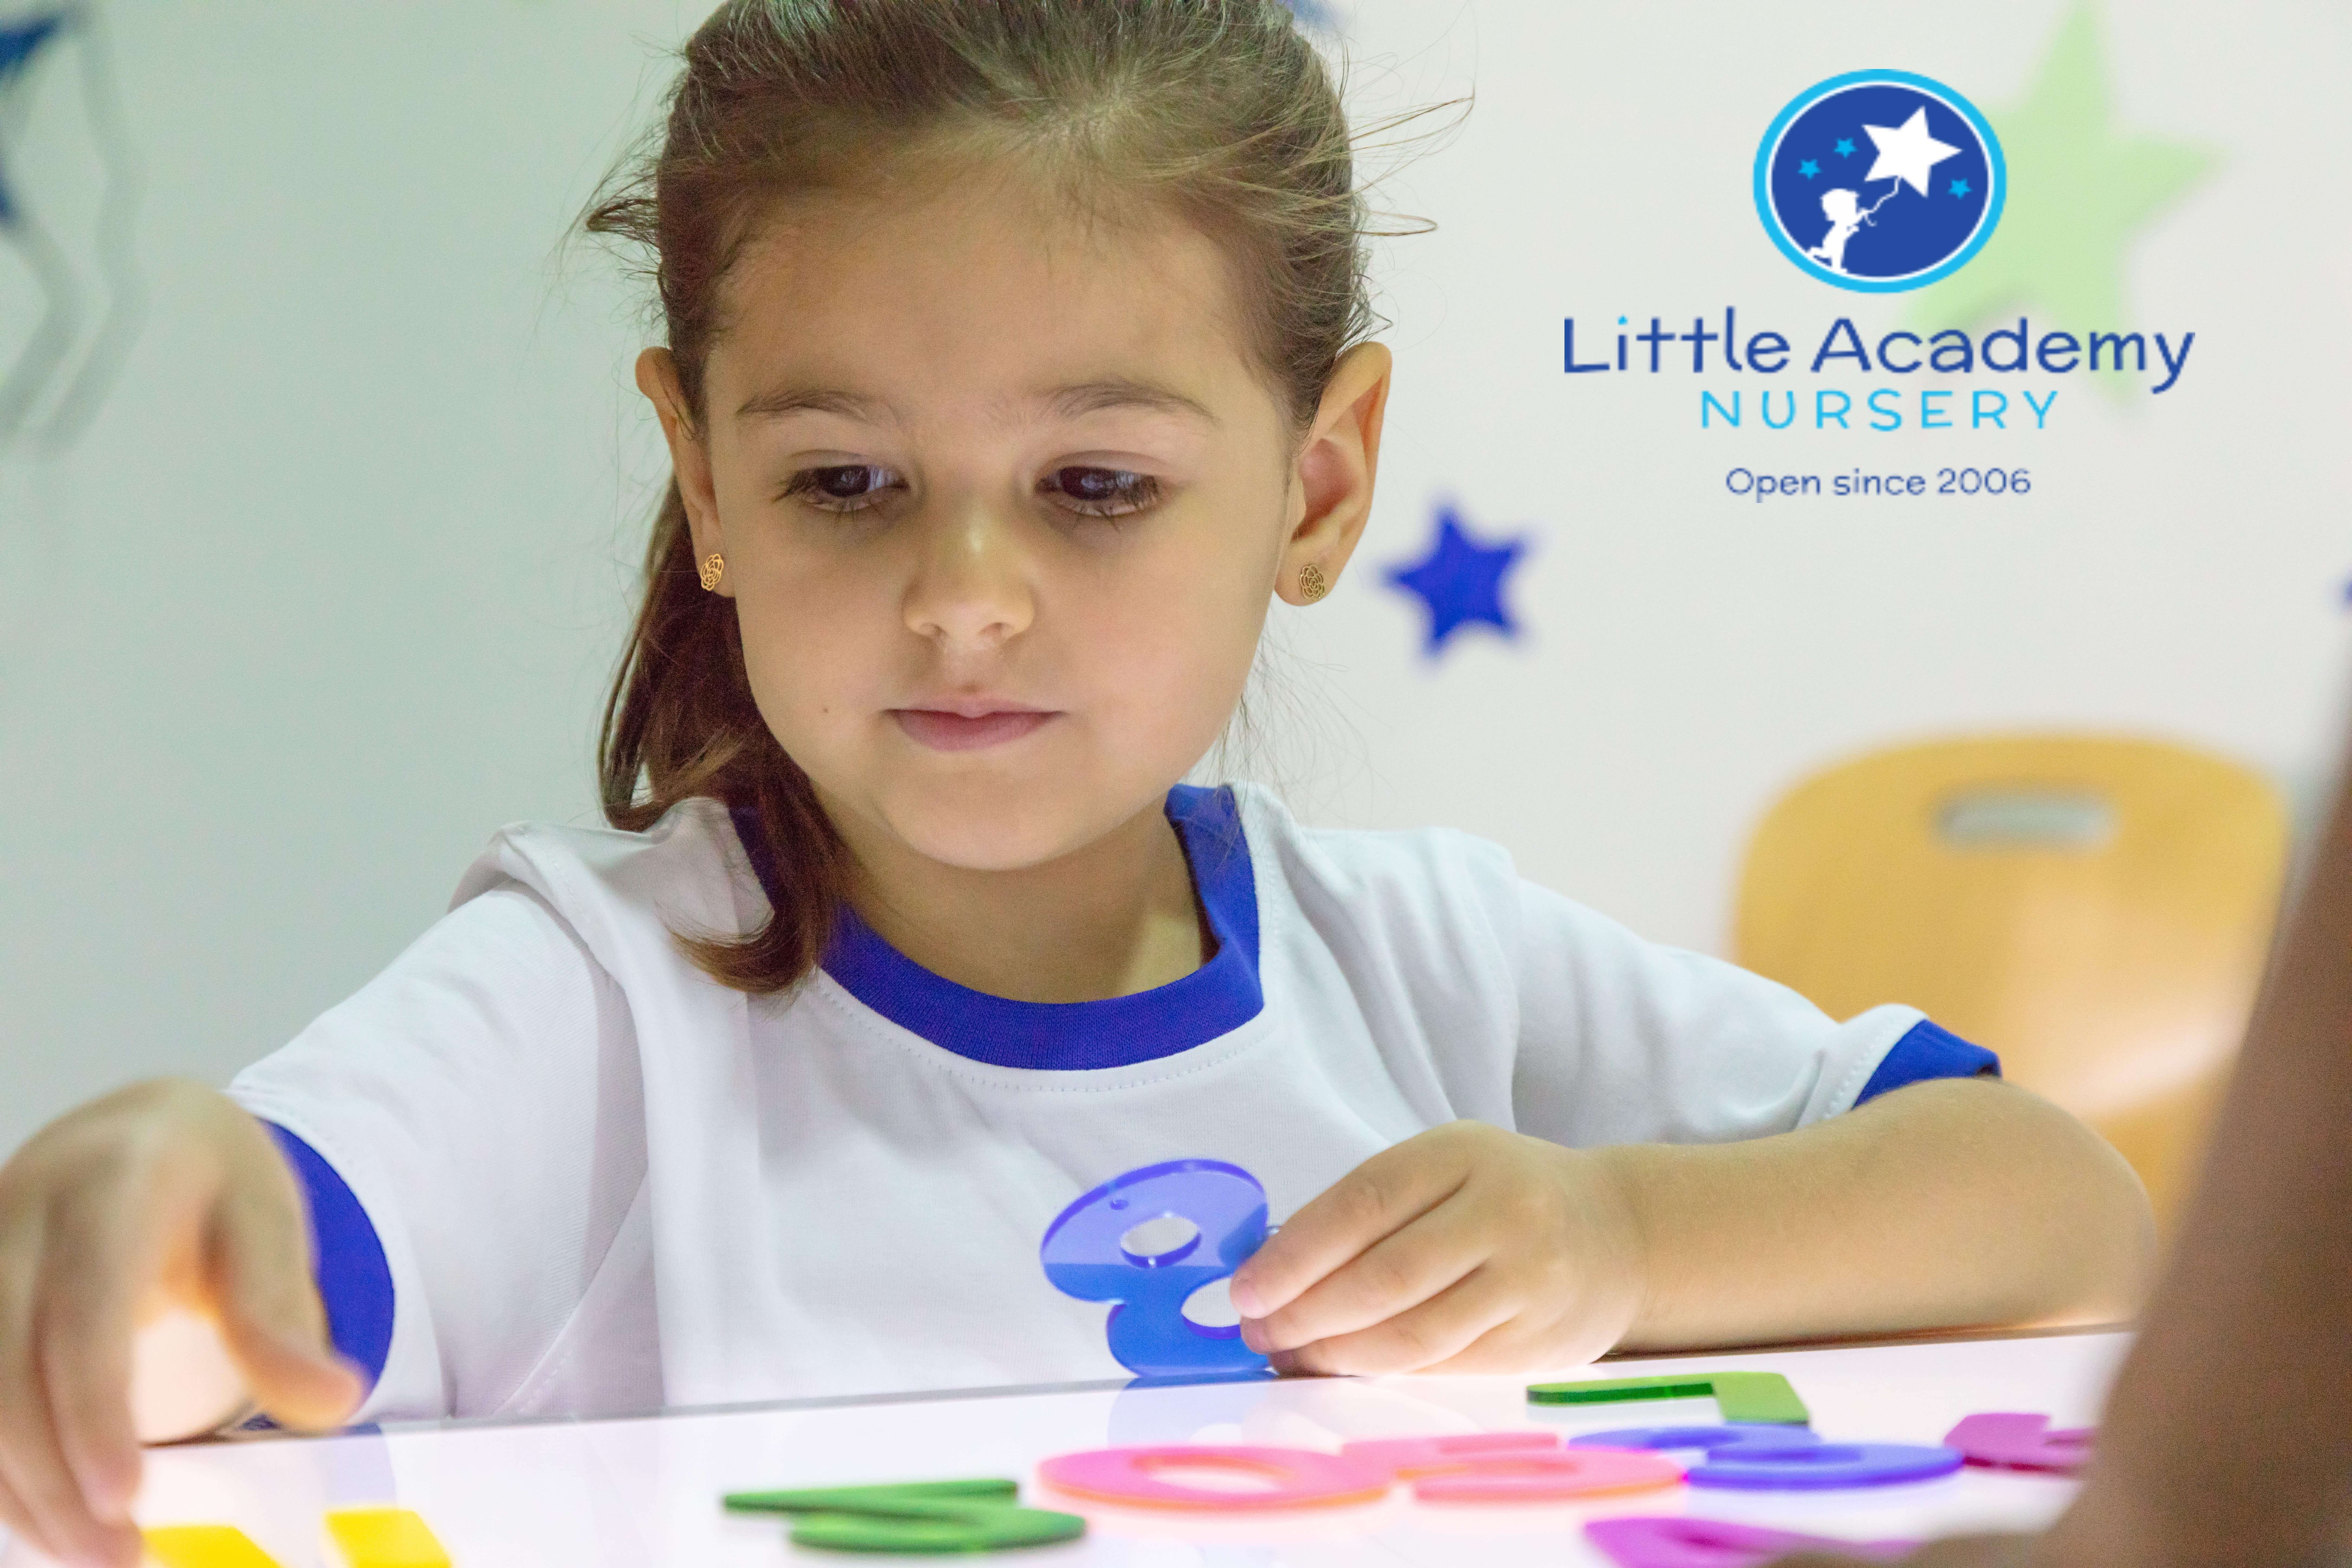 A little girl wearing a white and blue school uniform is sitting and playing with colorful toys.